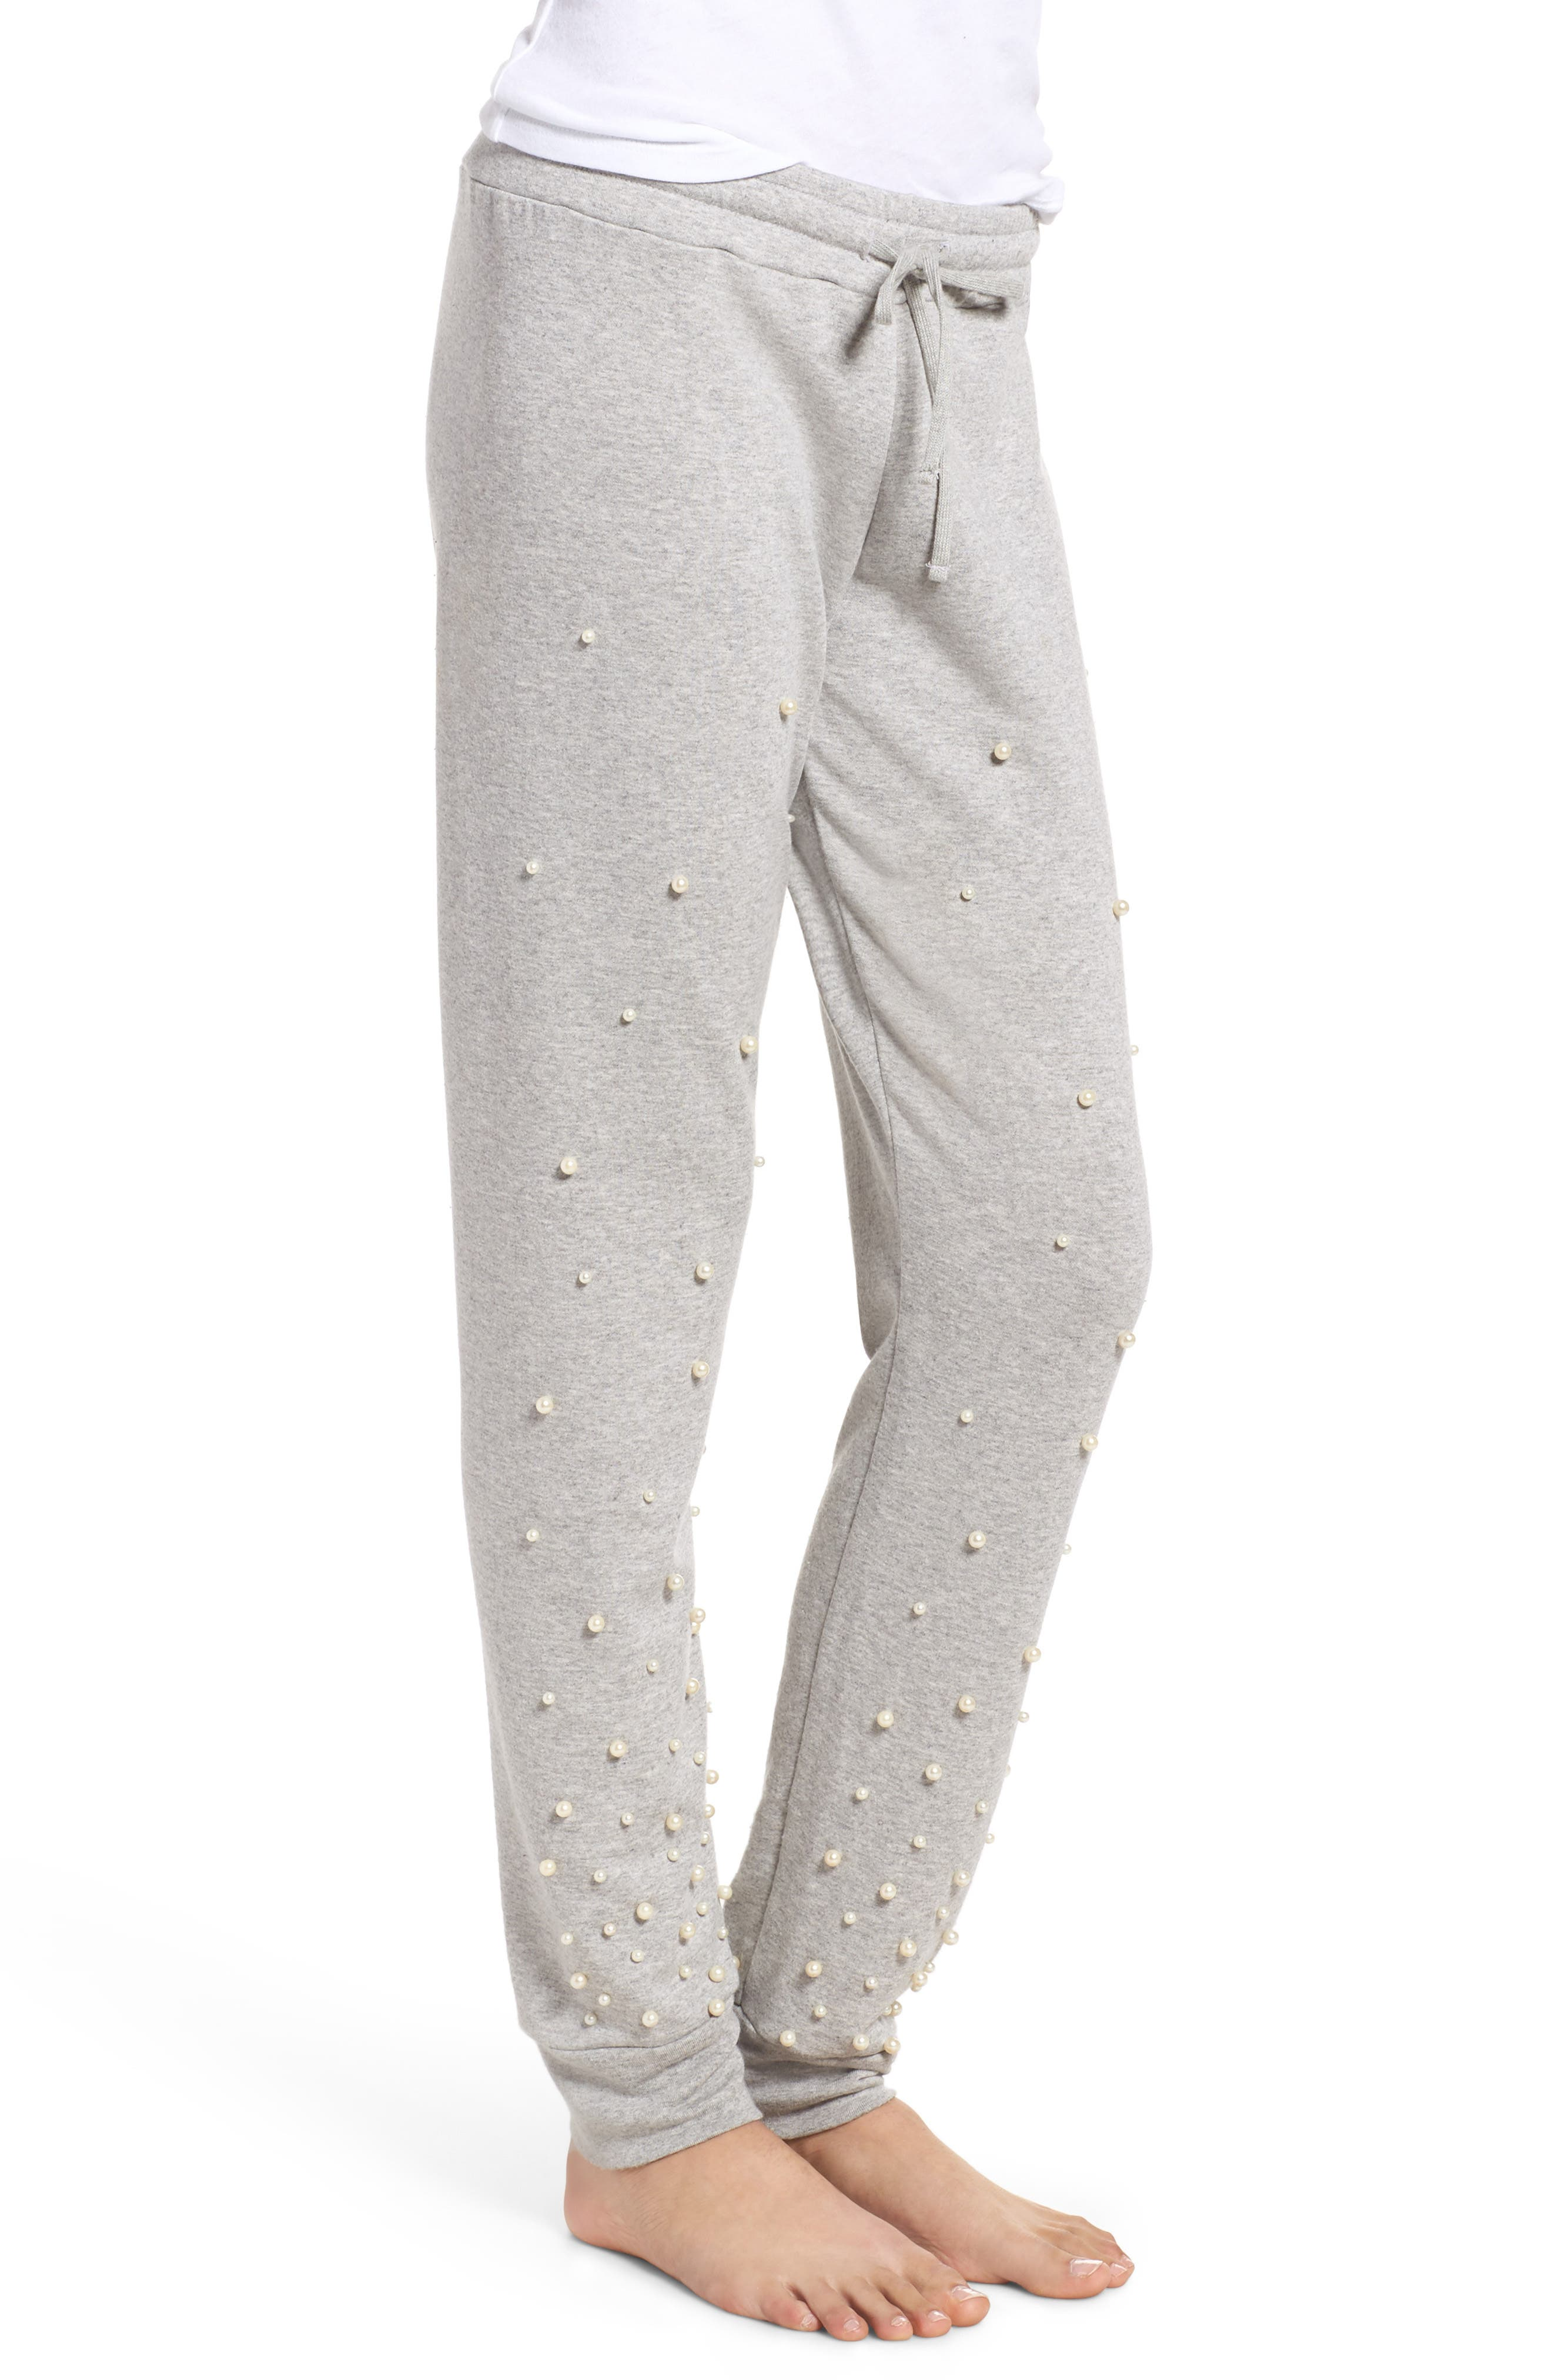 Price Imitation Pearl Embellished Lounge Pants,                             Alternate thumbnail 3, color,                             035